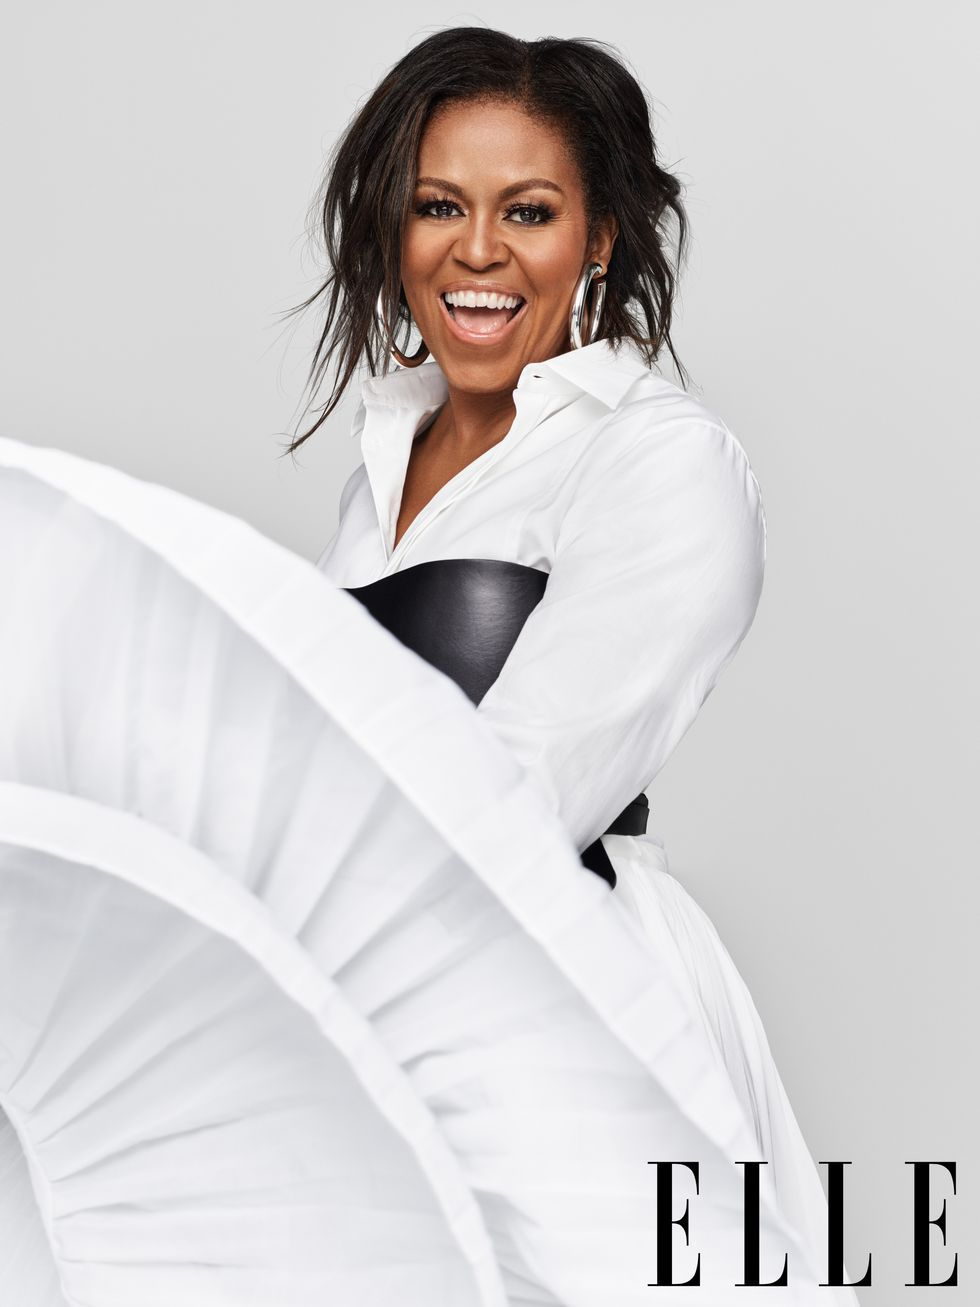 Michelle Obama ELLE US December 2018 (1).jpg